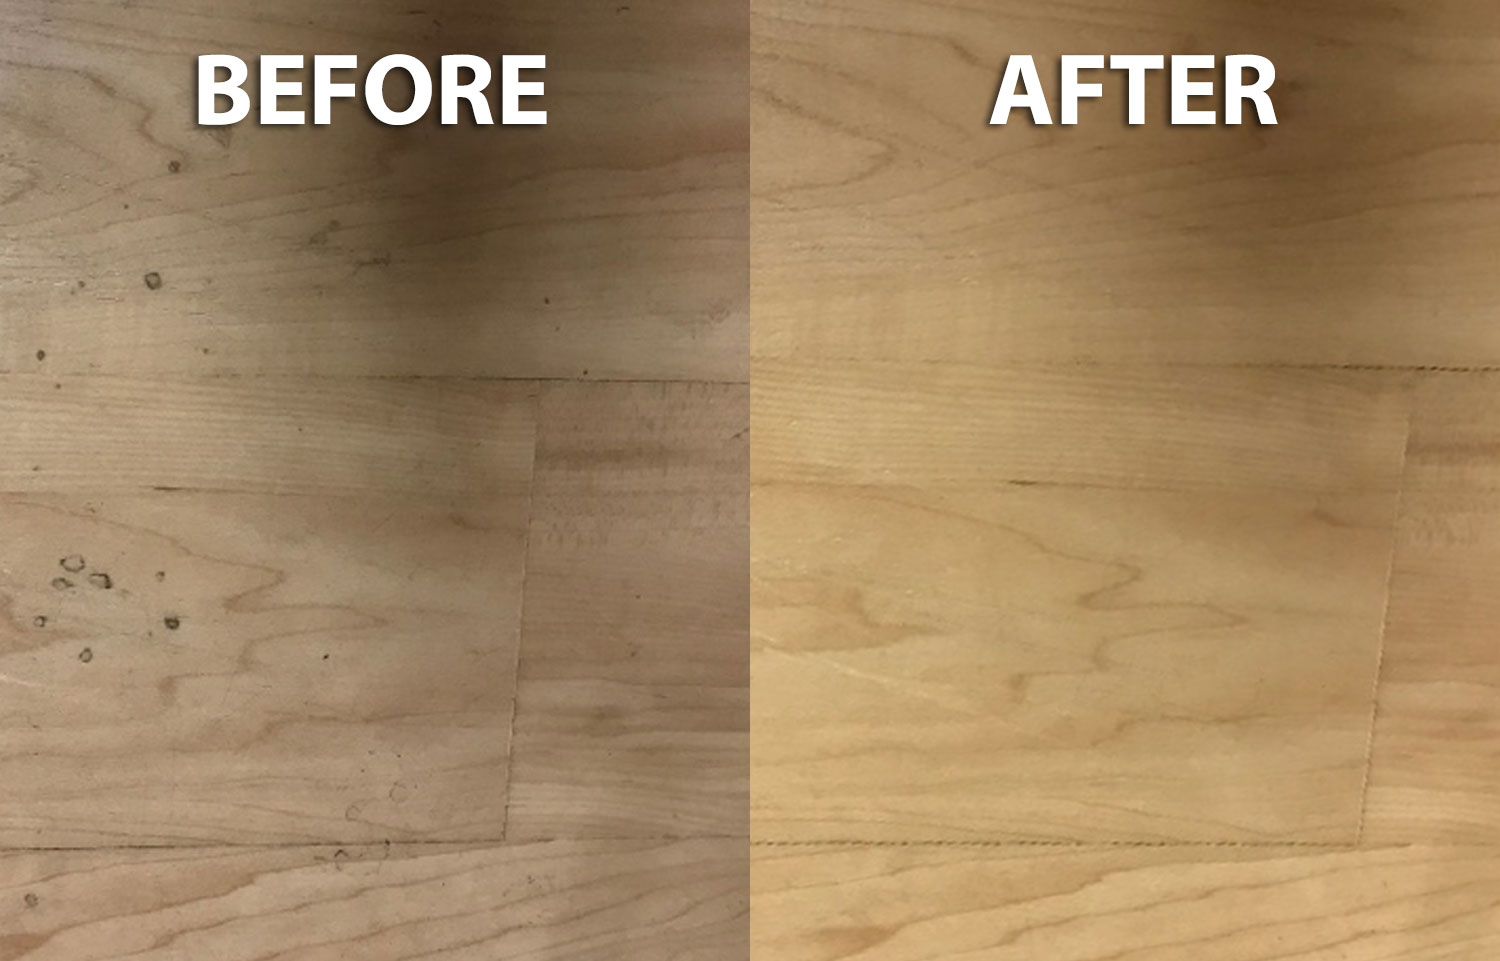 More Luxury Vinyl Flooring after being cleaned by EnvirOx products